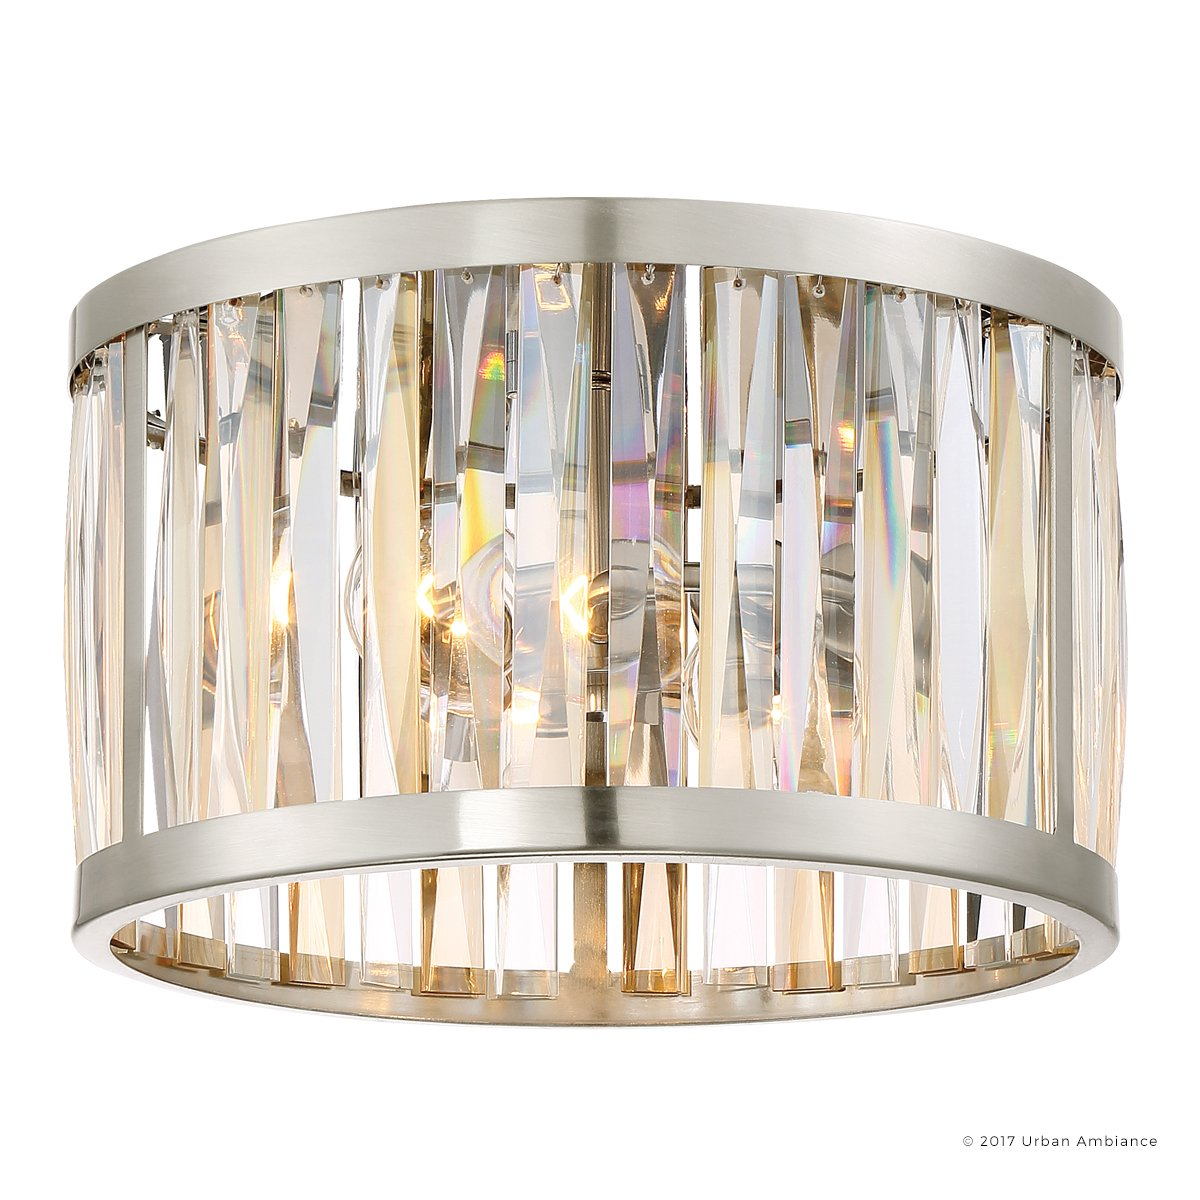 Luxury Crystal Ceiling Light, Small Size: 8''H x 13.25''W, with Modern Style Elements, Drum Design, Brushed Nickel Finish and Alternating Cut Amber and Clear Glass Shade, UQL2572 by Urban Ambiance